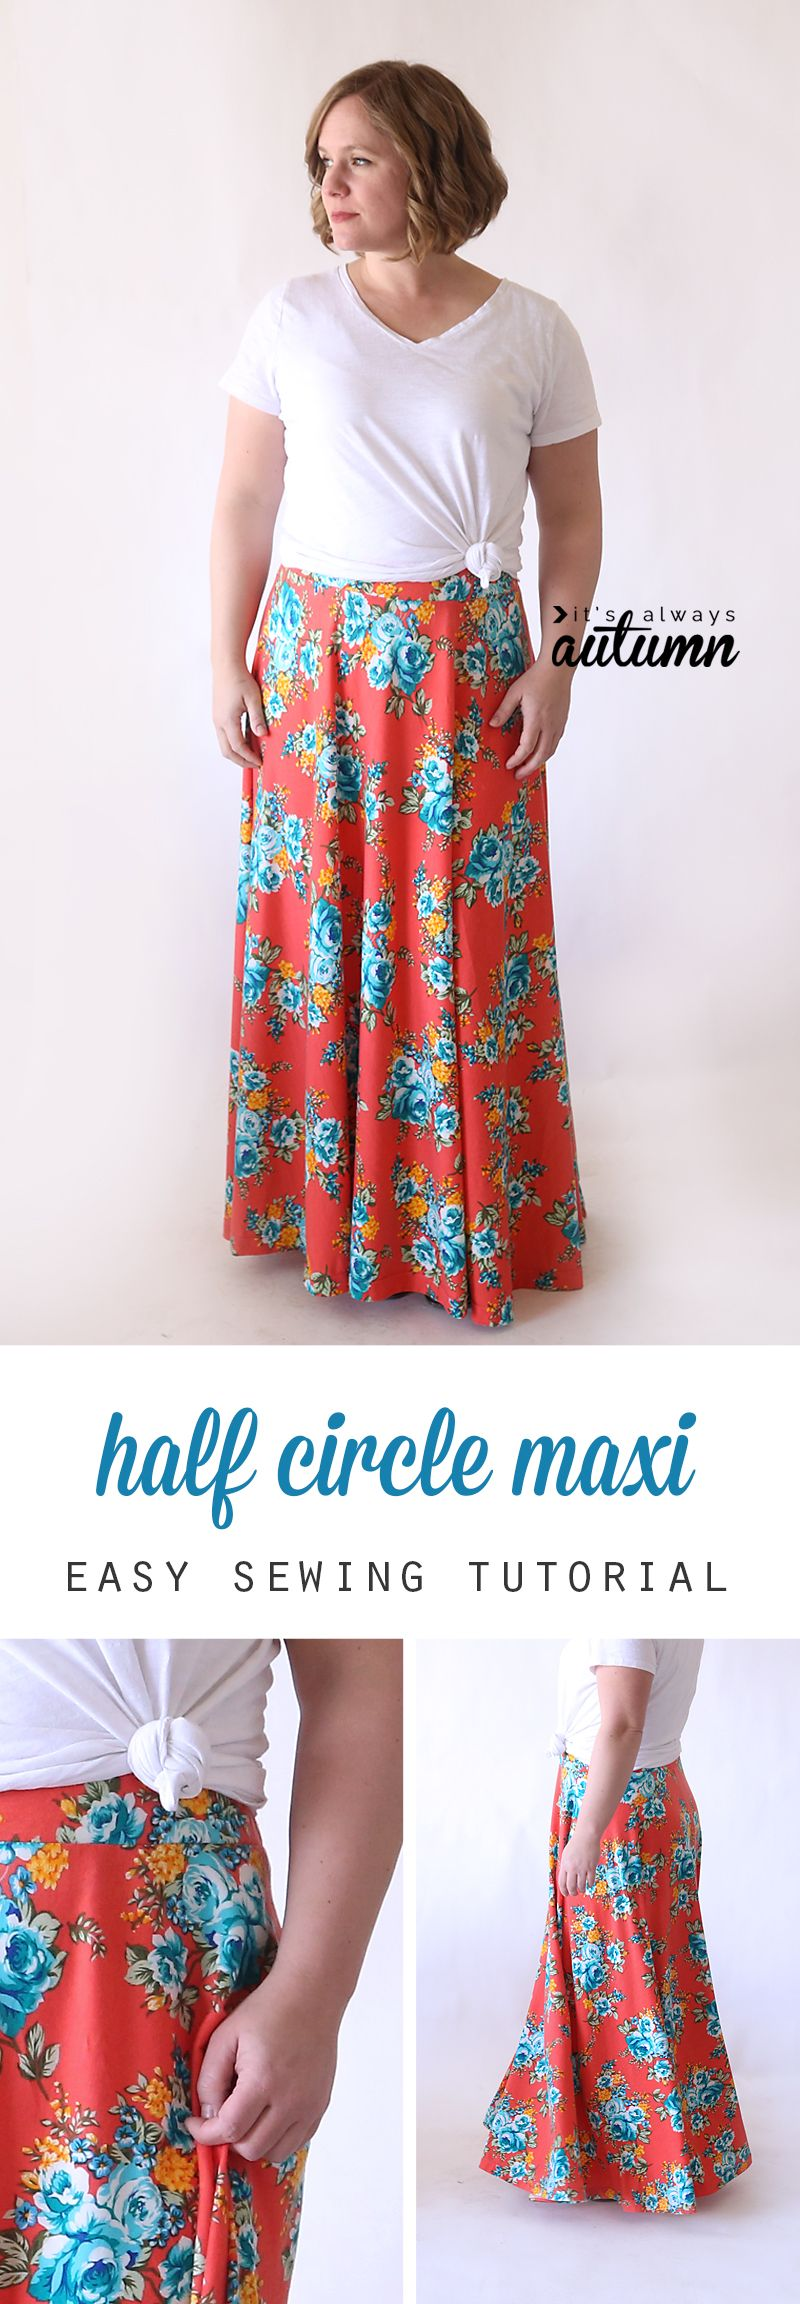 half circle maxi skirt diy maxi skirt tutorials and